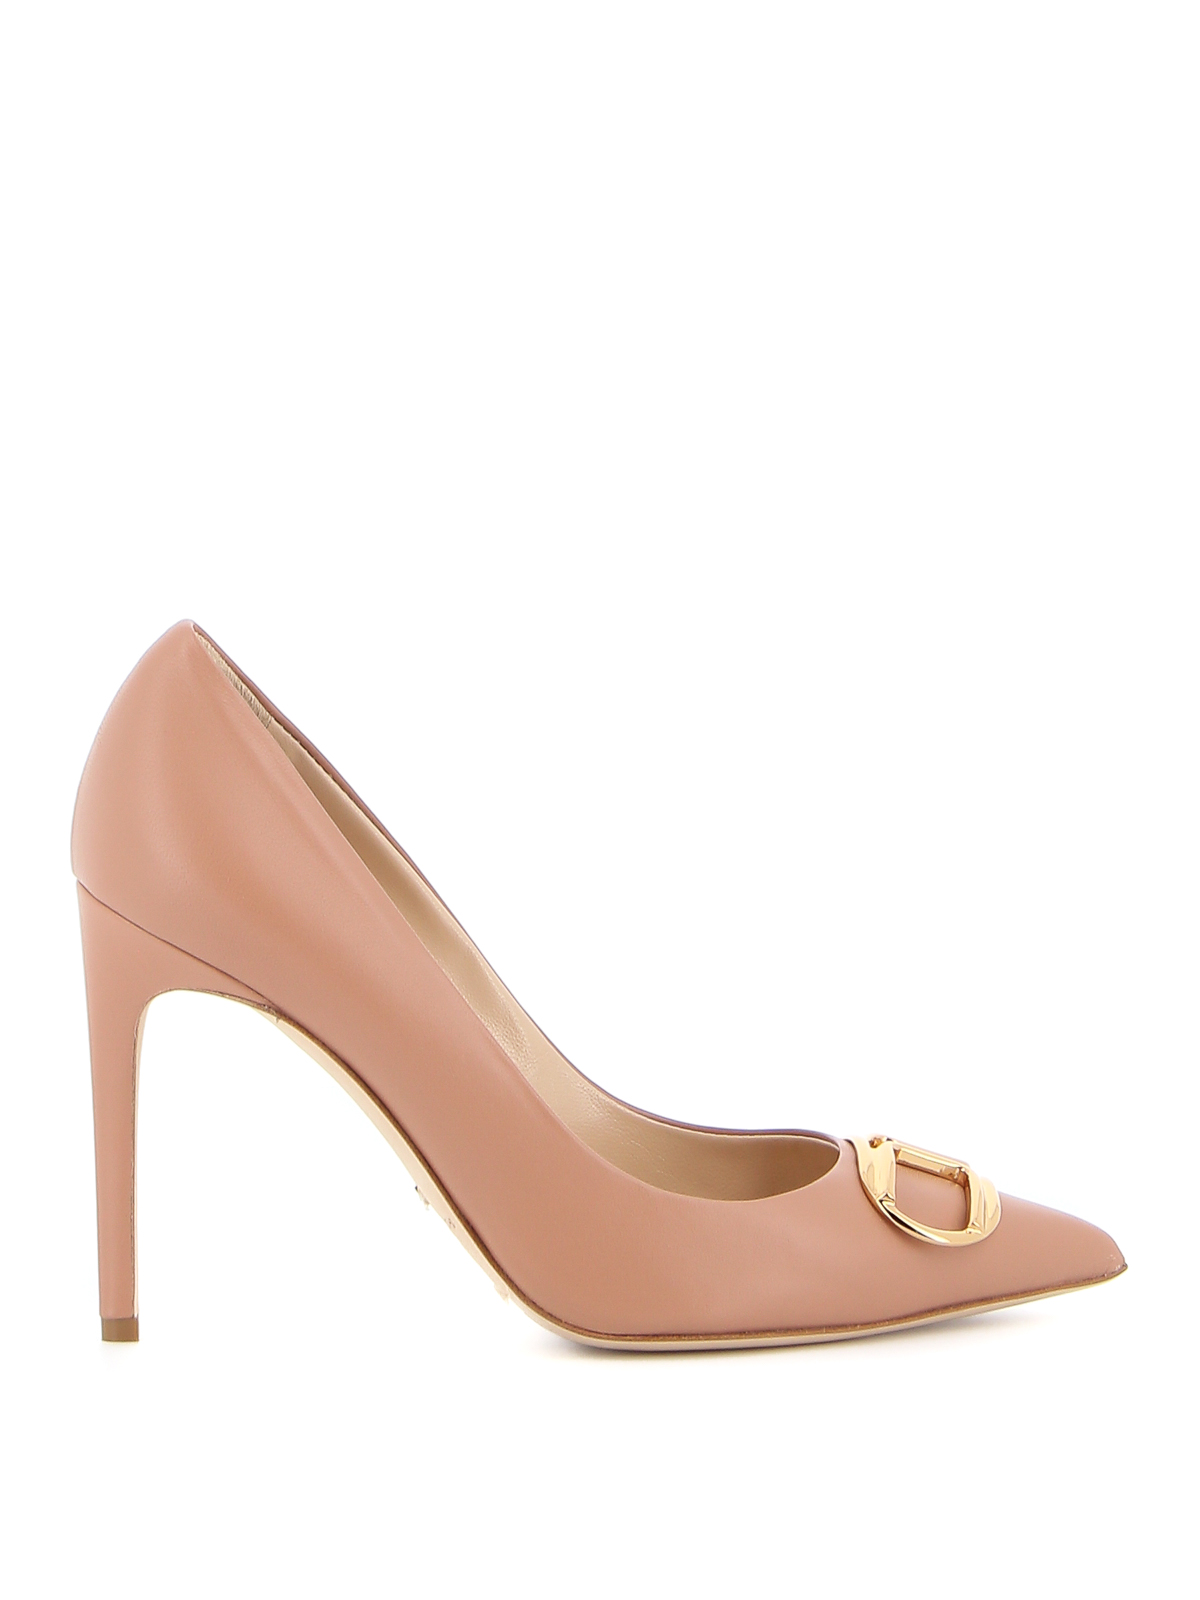 Elisabetta Franchi Leathers LEATHER PUMPS WITH LOGO BUCKLE